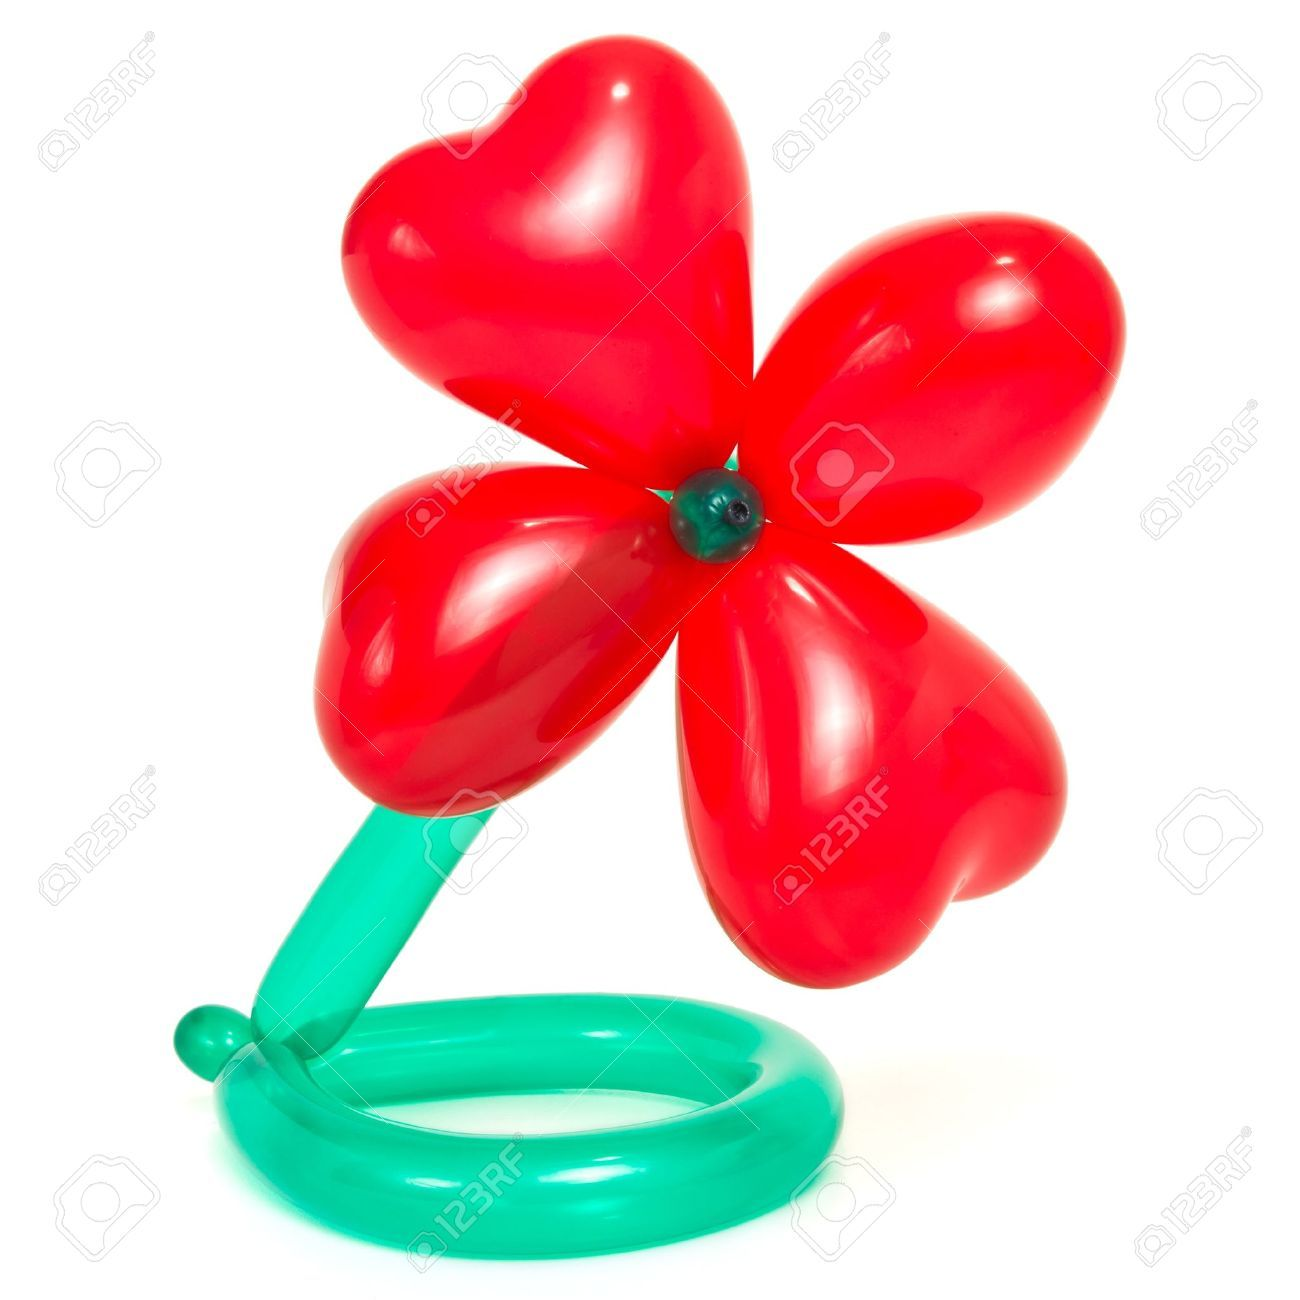 Ed's balloons | The flower is important as it will reflect upon Tim's growth as a clown. Thus, it will be featured also as a symbol.